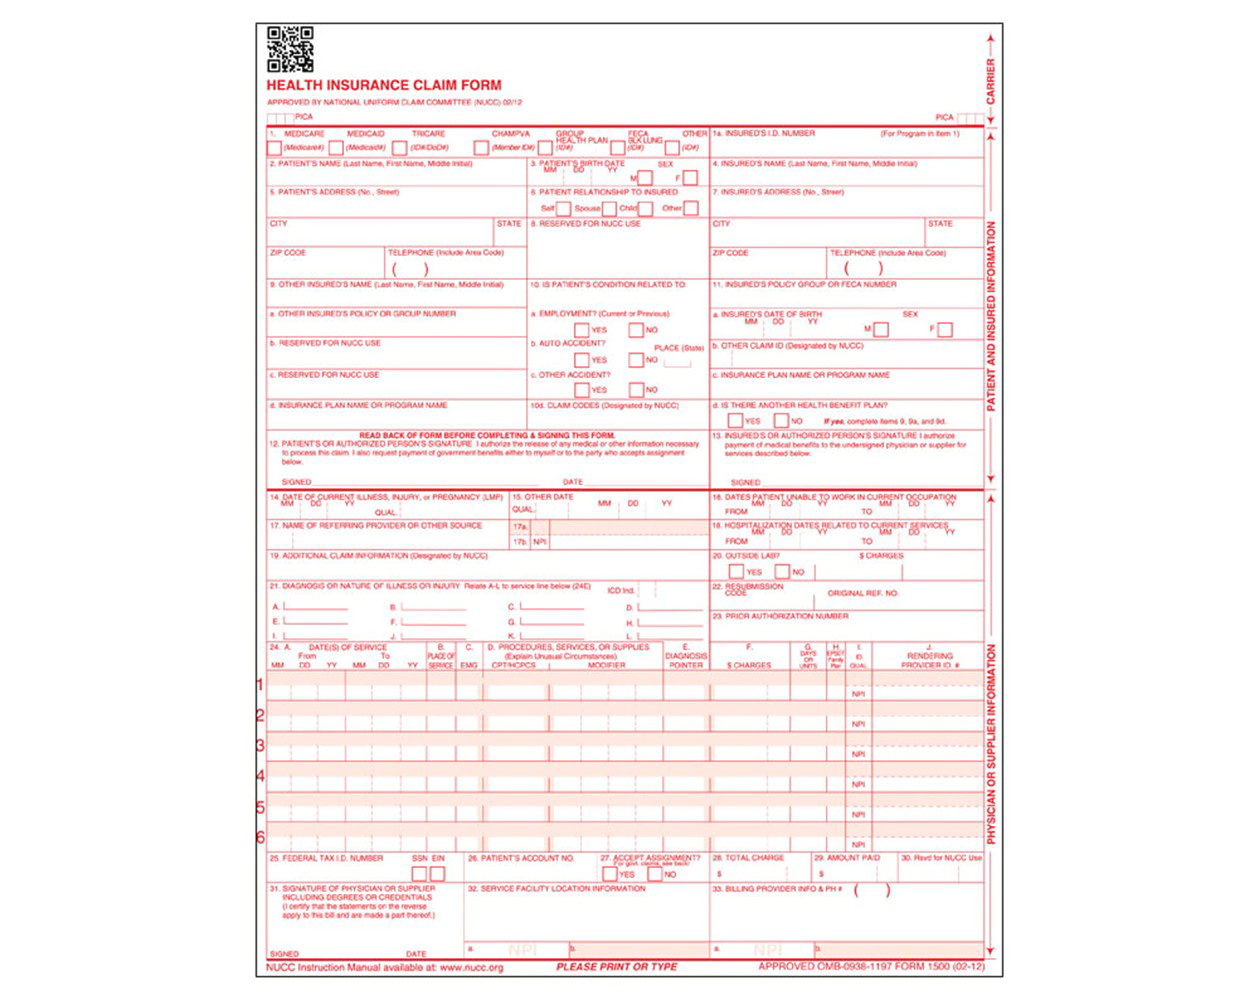 Hcfa Form 1500 Instructions